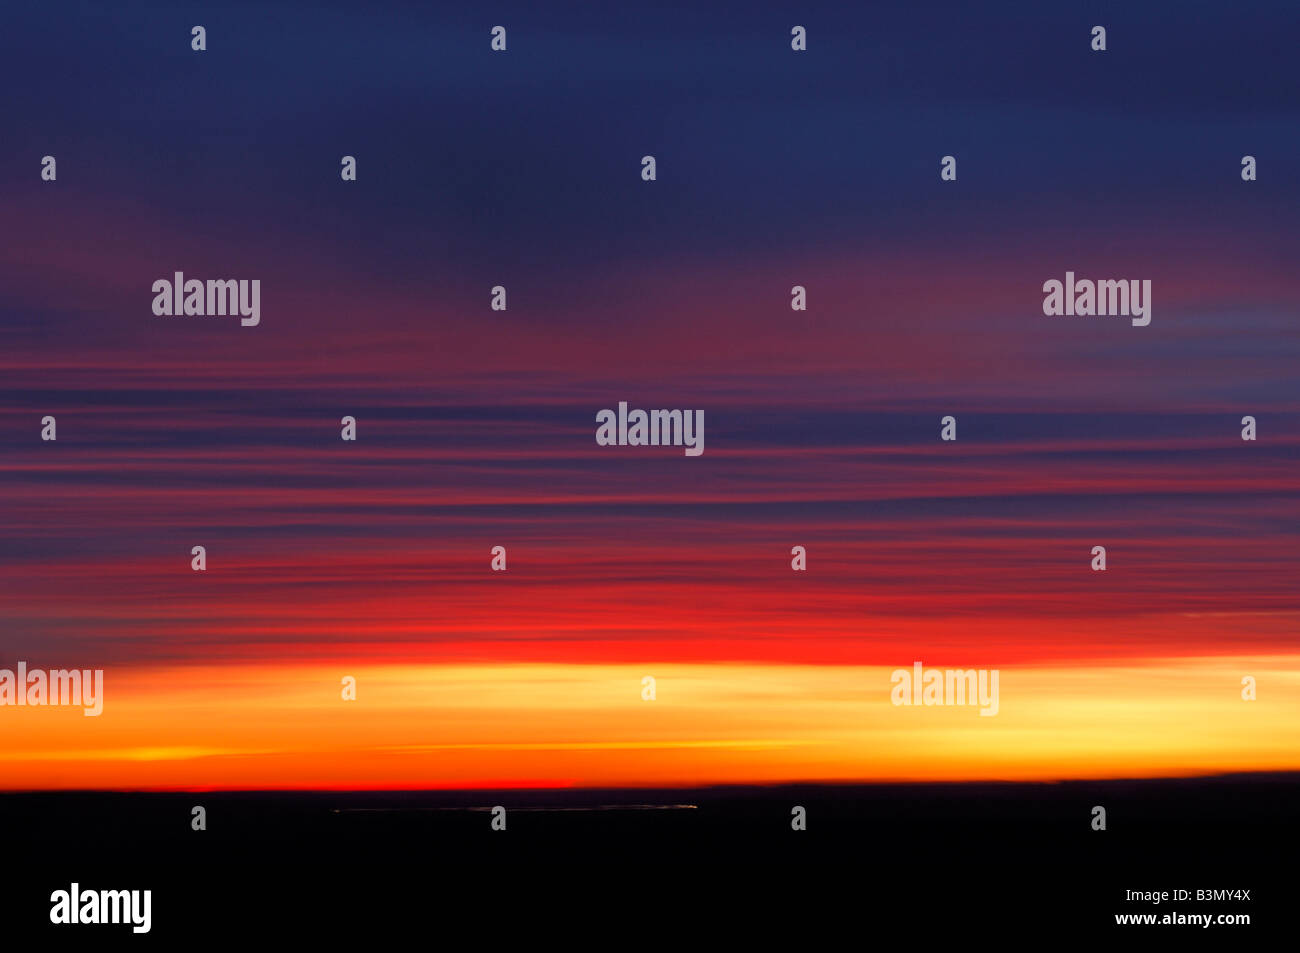 Sky with afterglow - Stock Image